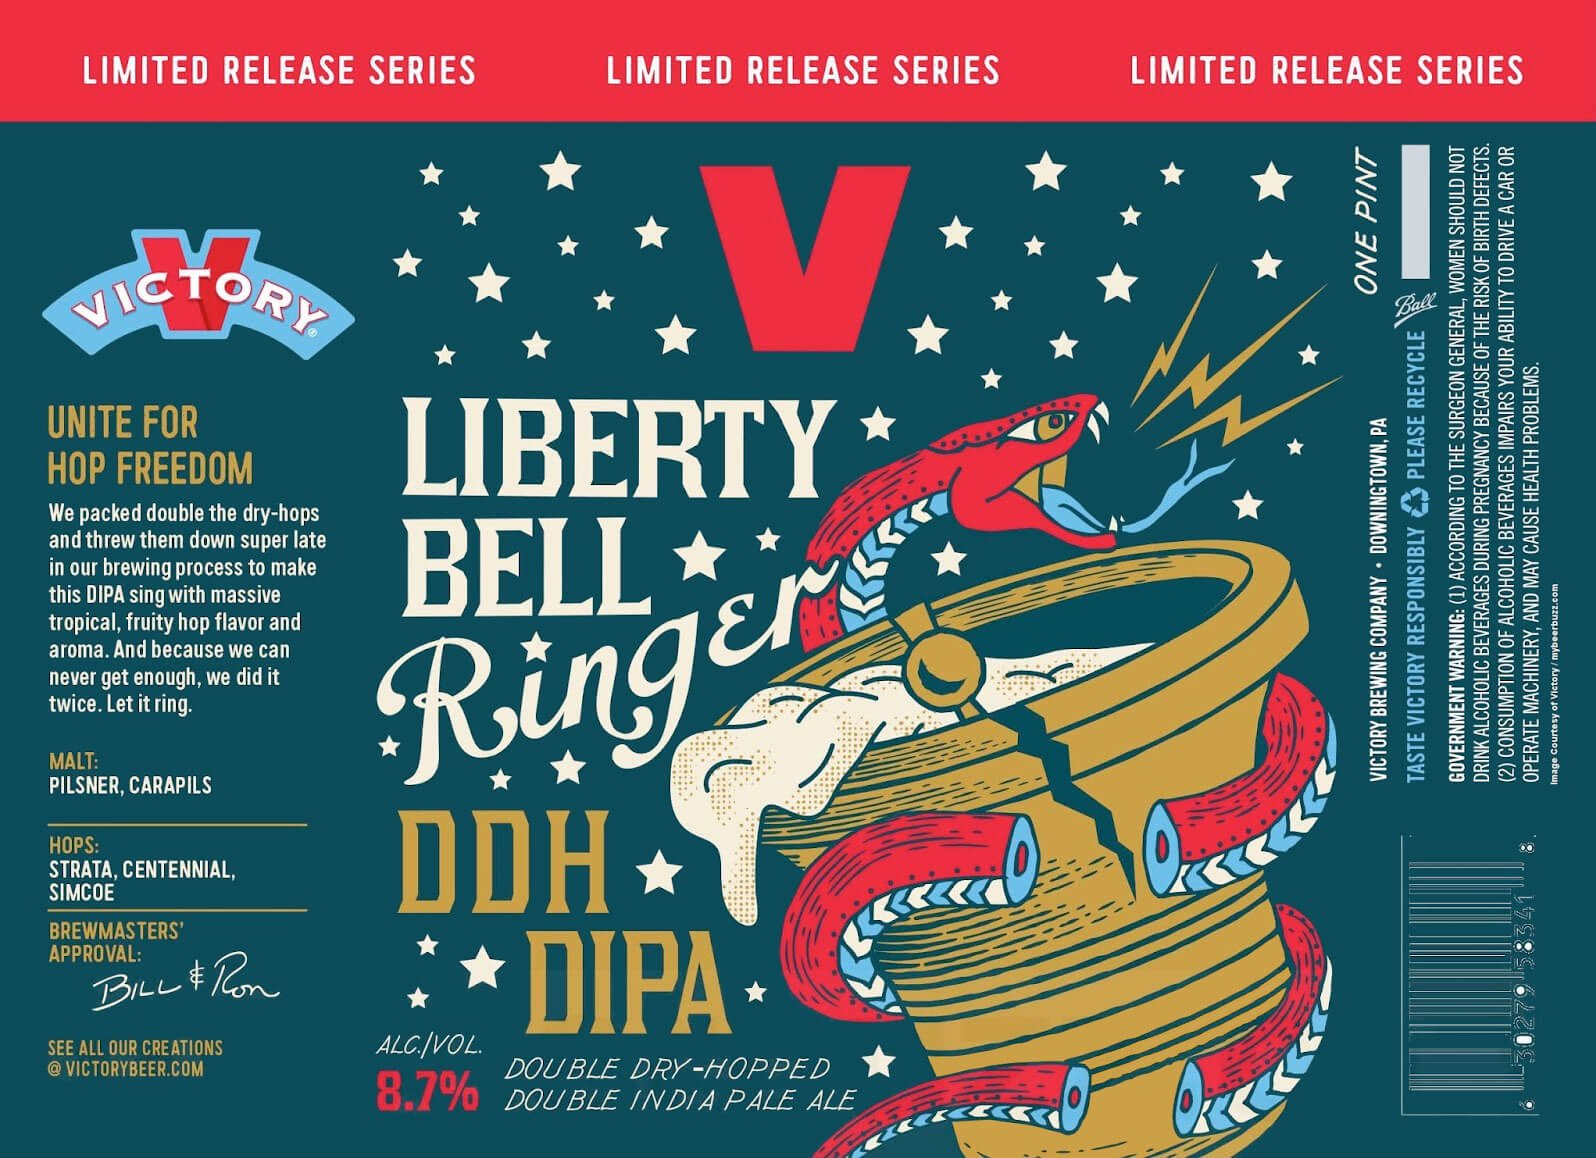 Label art for the Liberty Bell Ringer by Victory Brewing Company